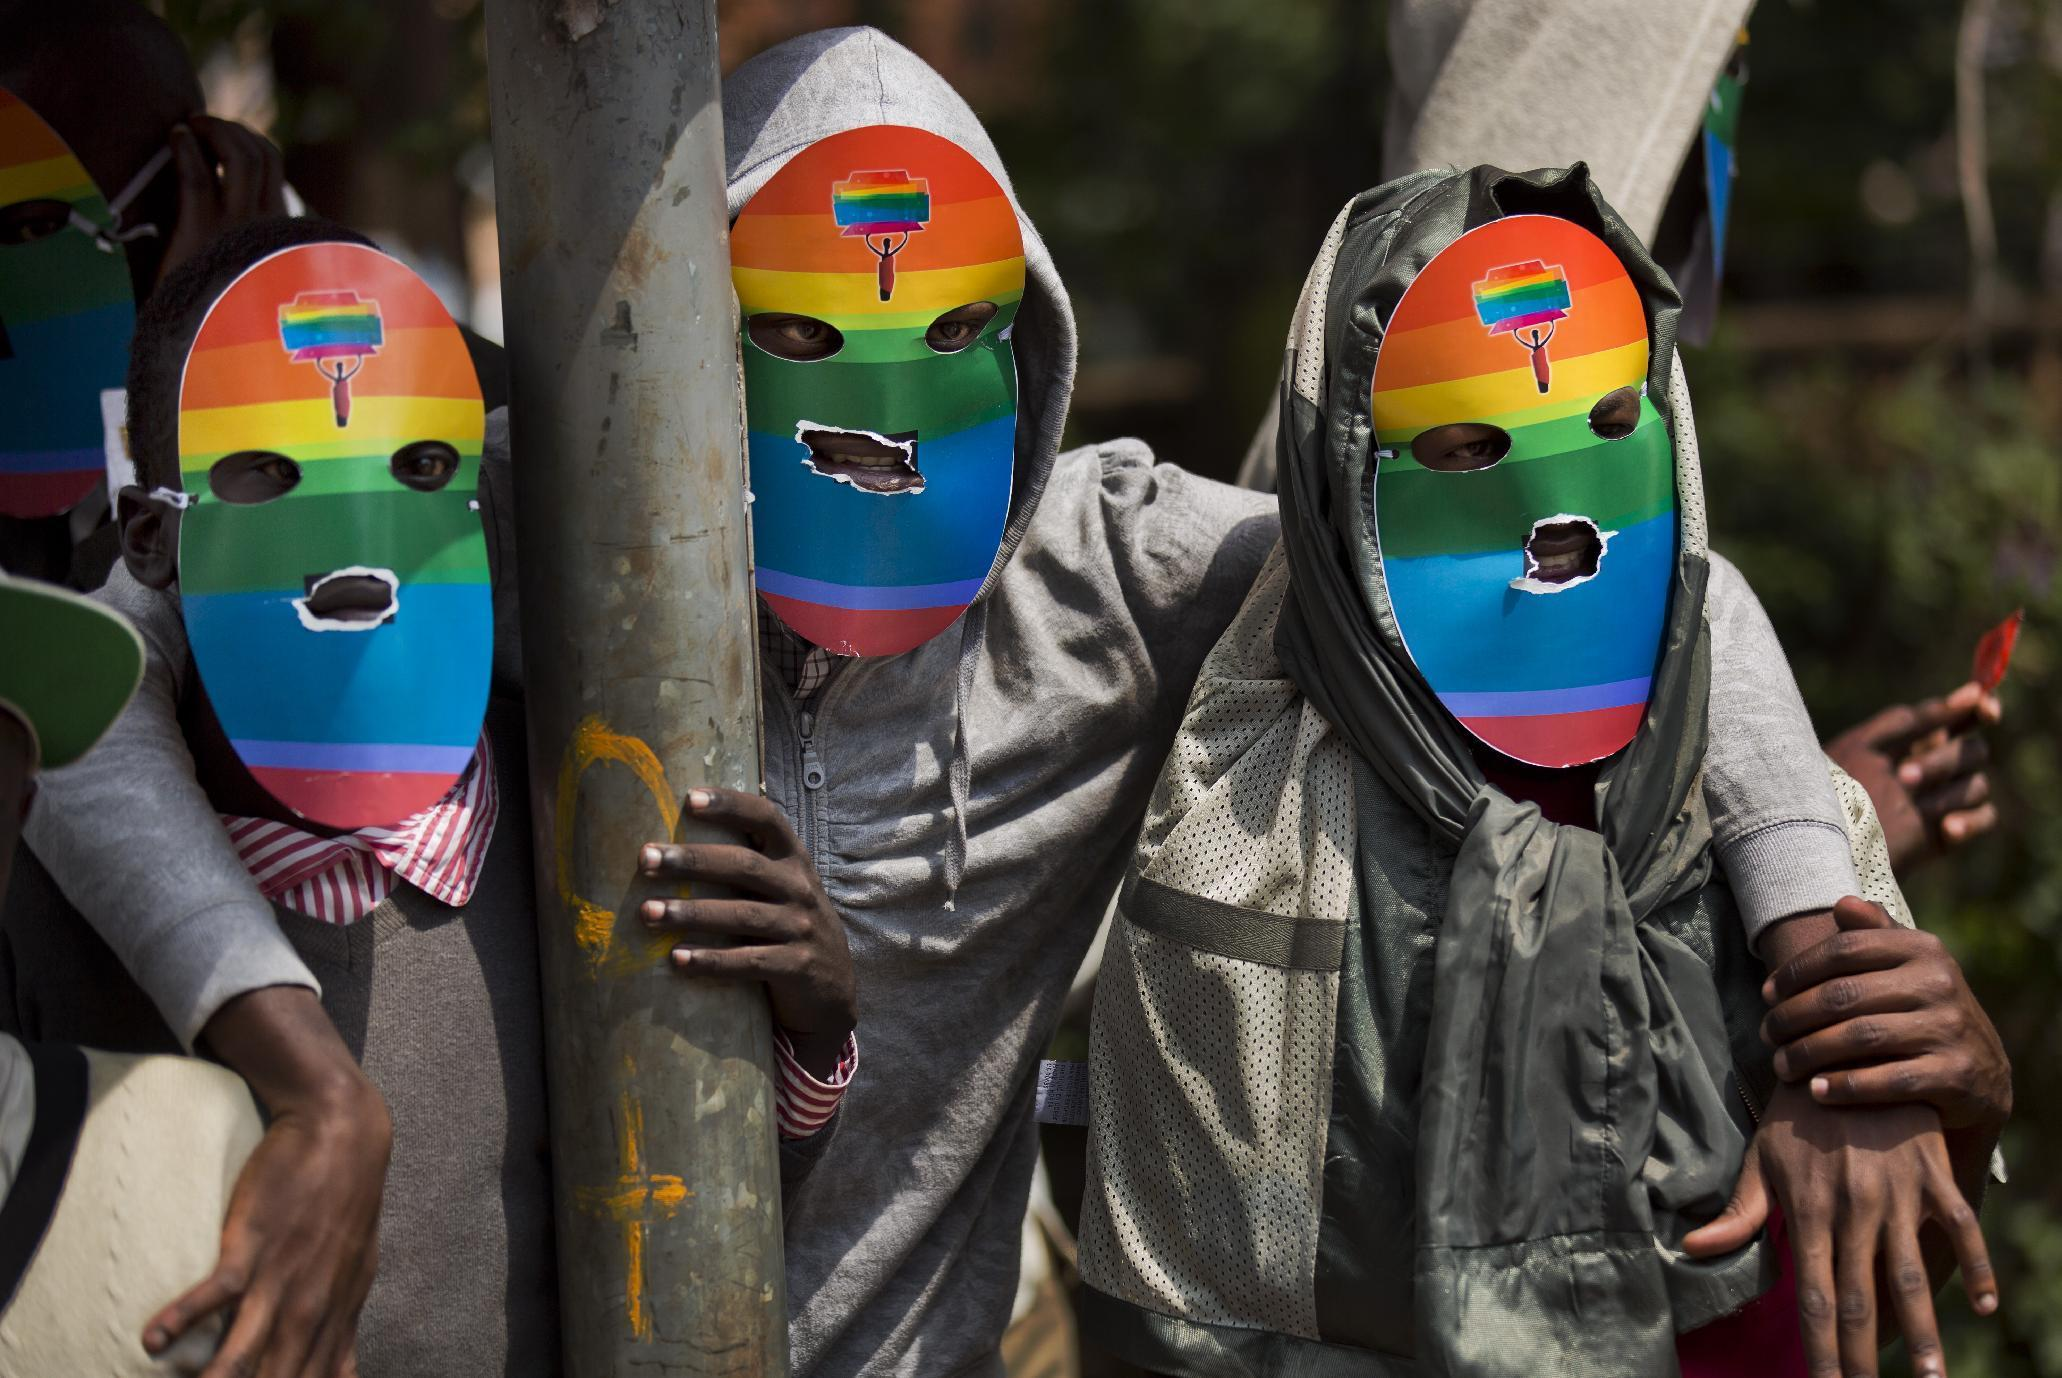 Kenya: Court orders government to register gay rights group